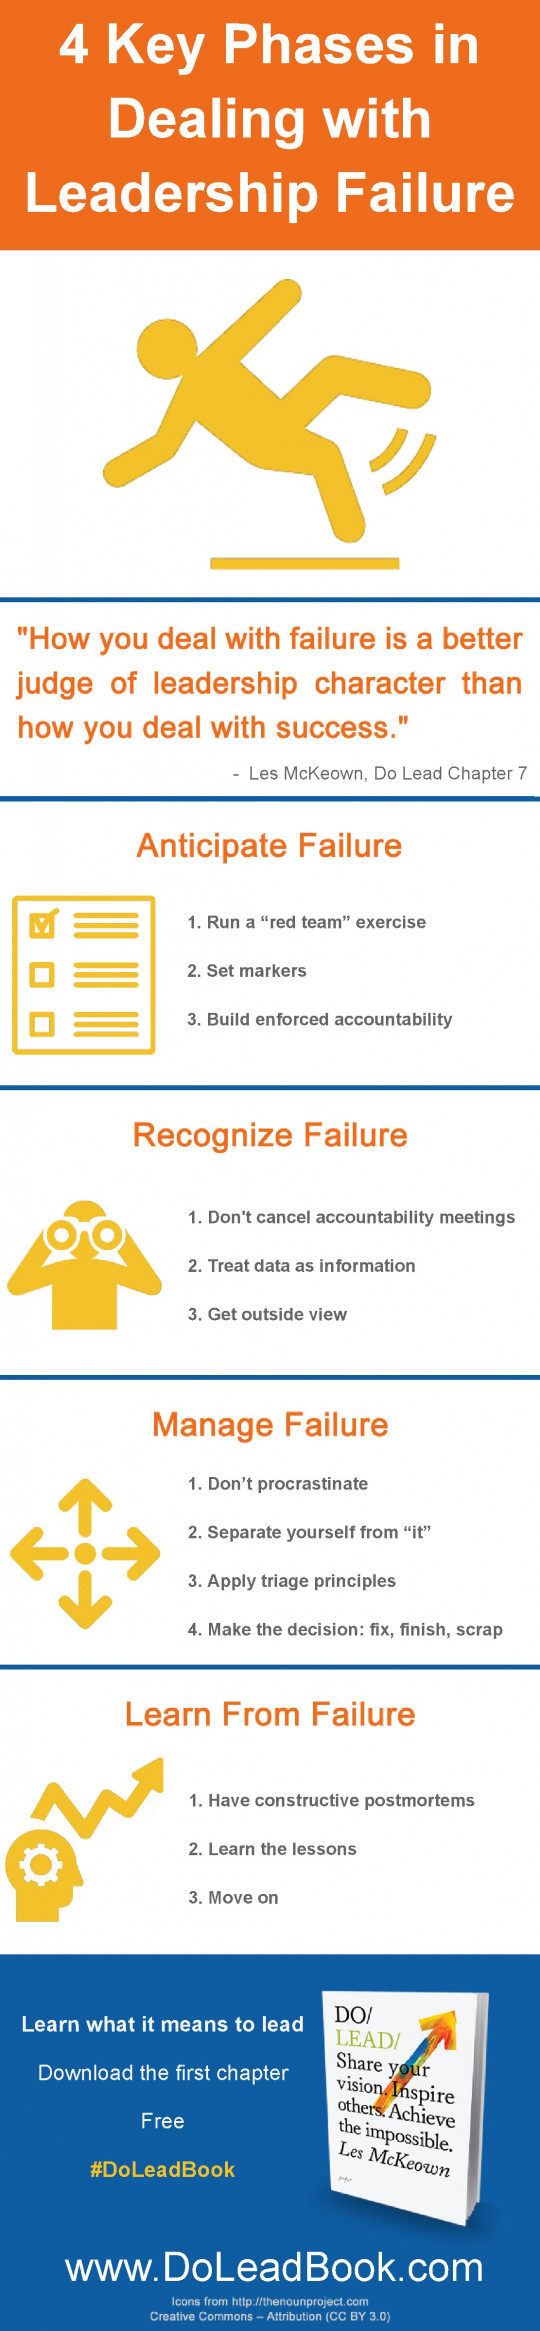 4 Key Phases in Dealing with Leadership Failure